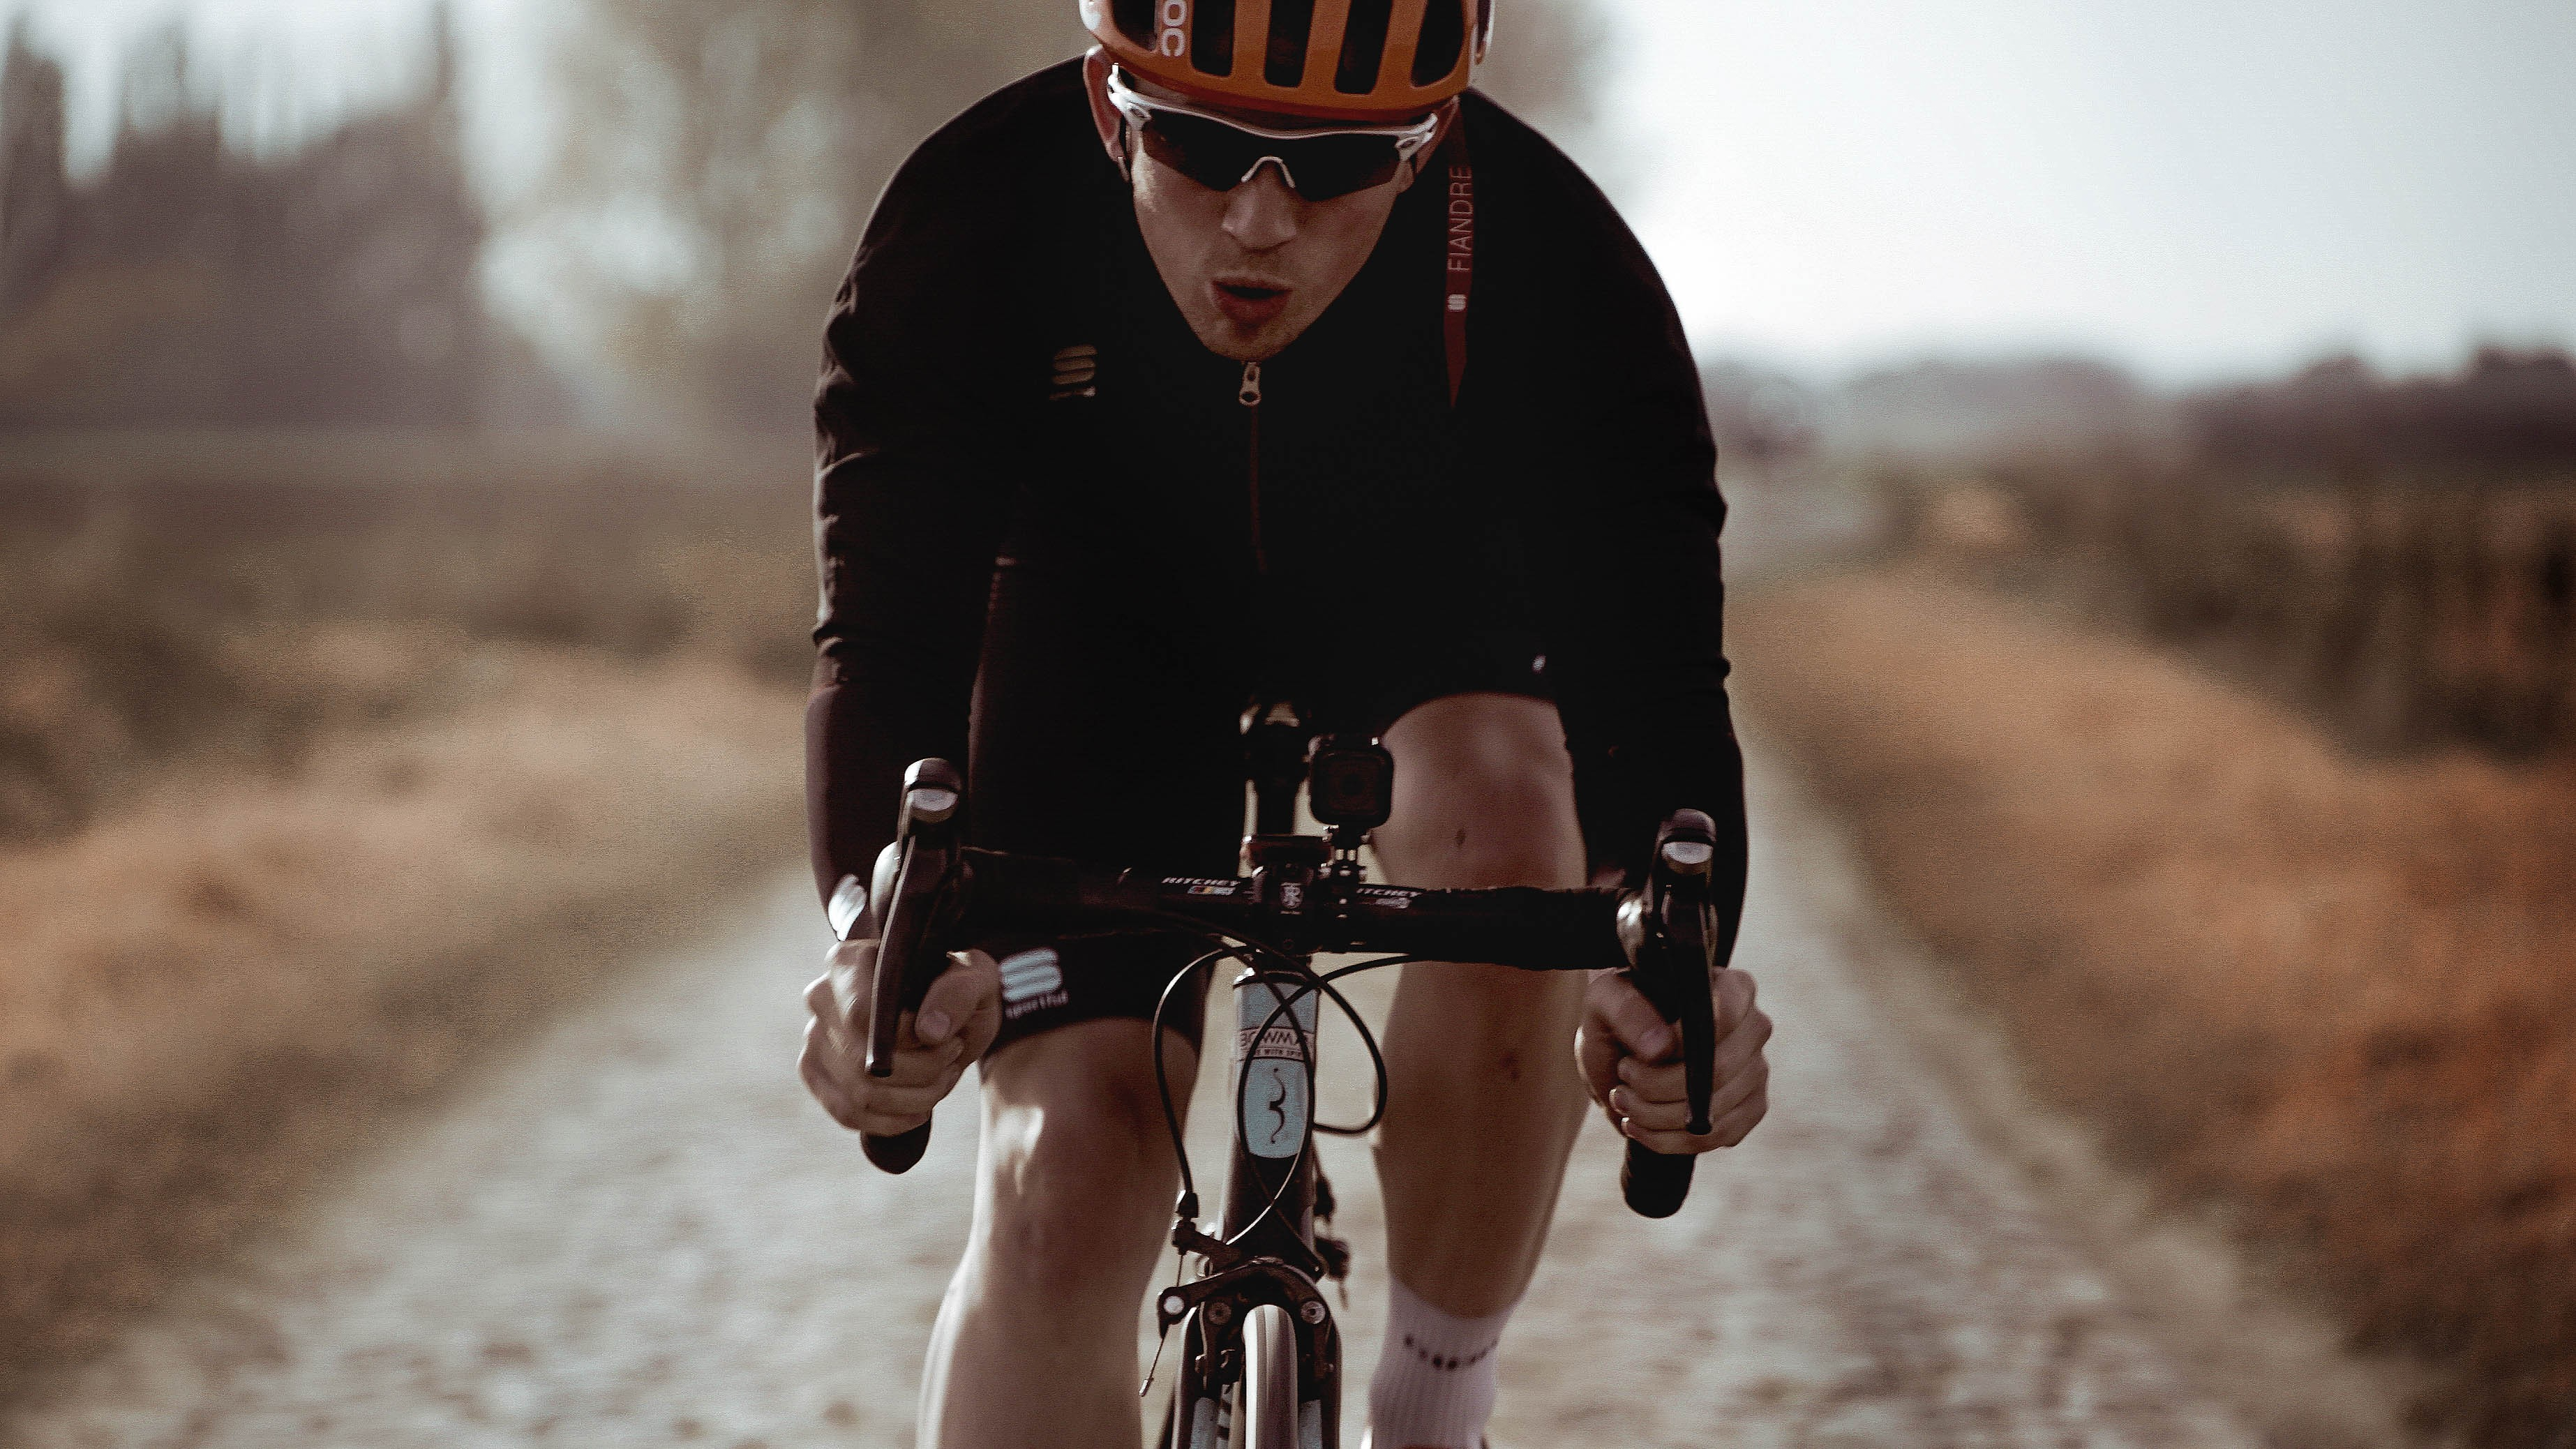 Our man Josh conquers the cobbles